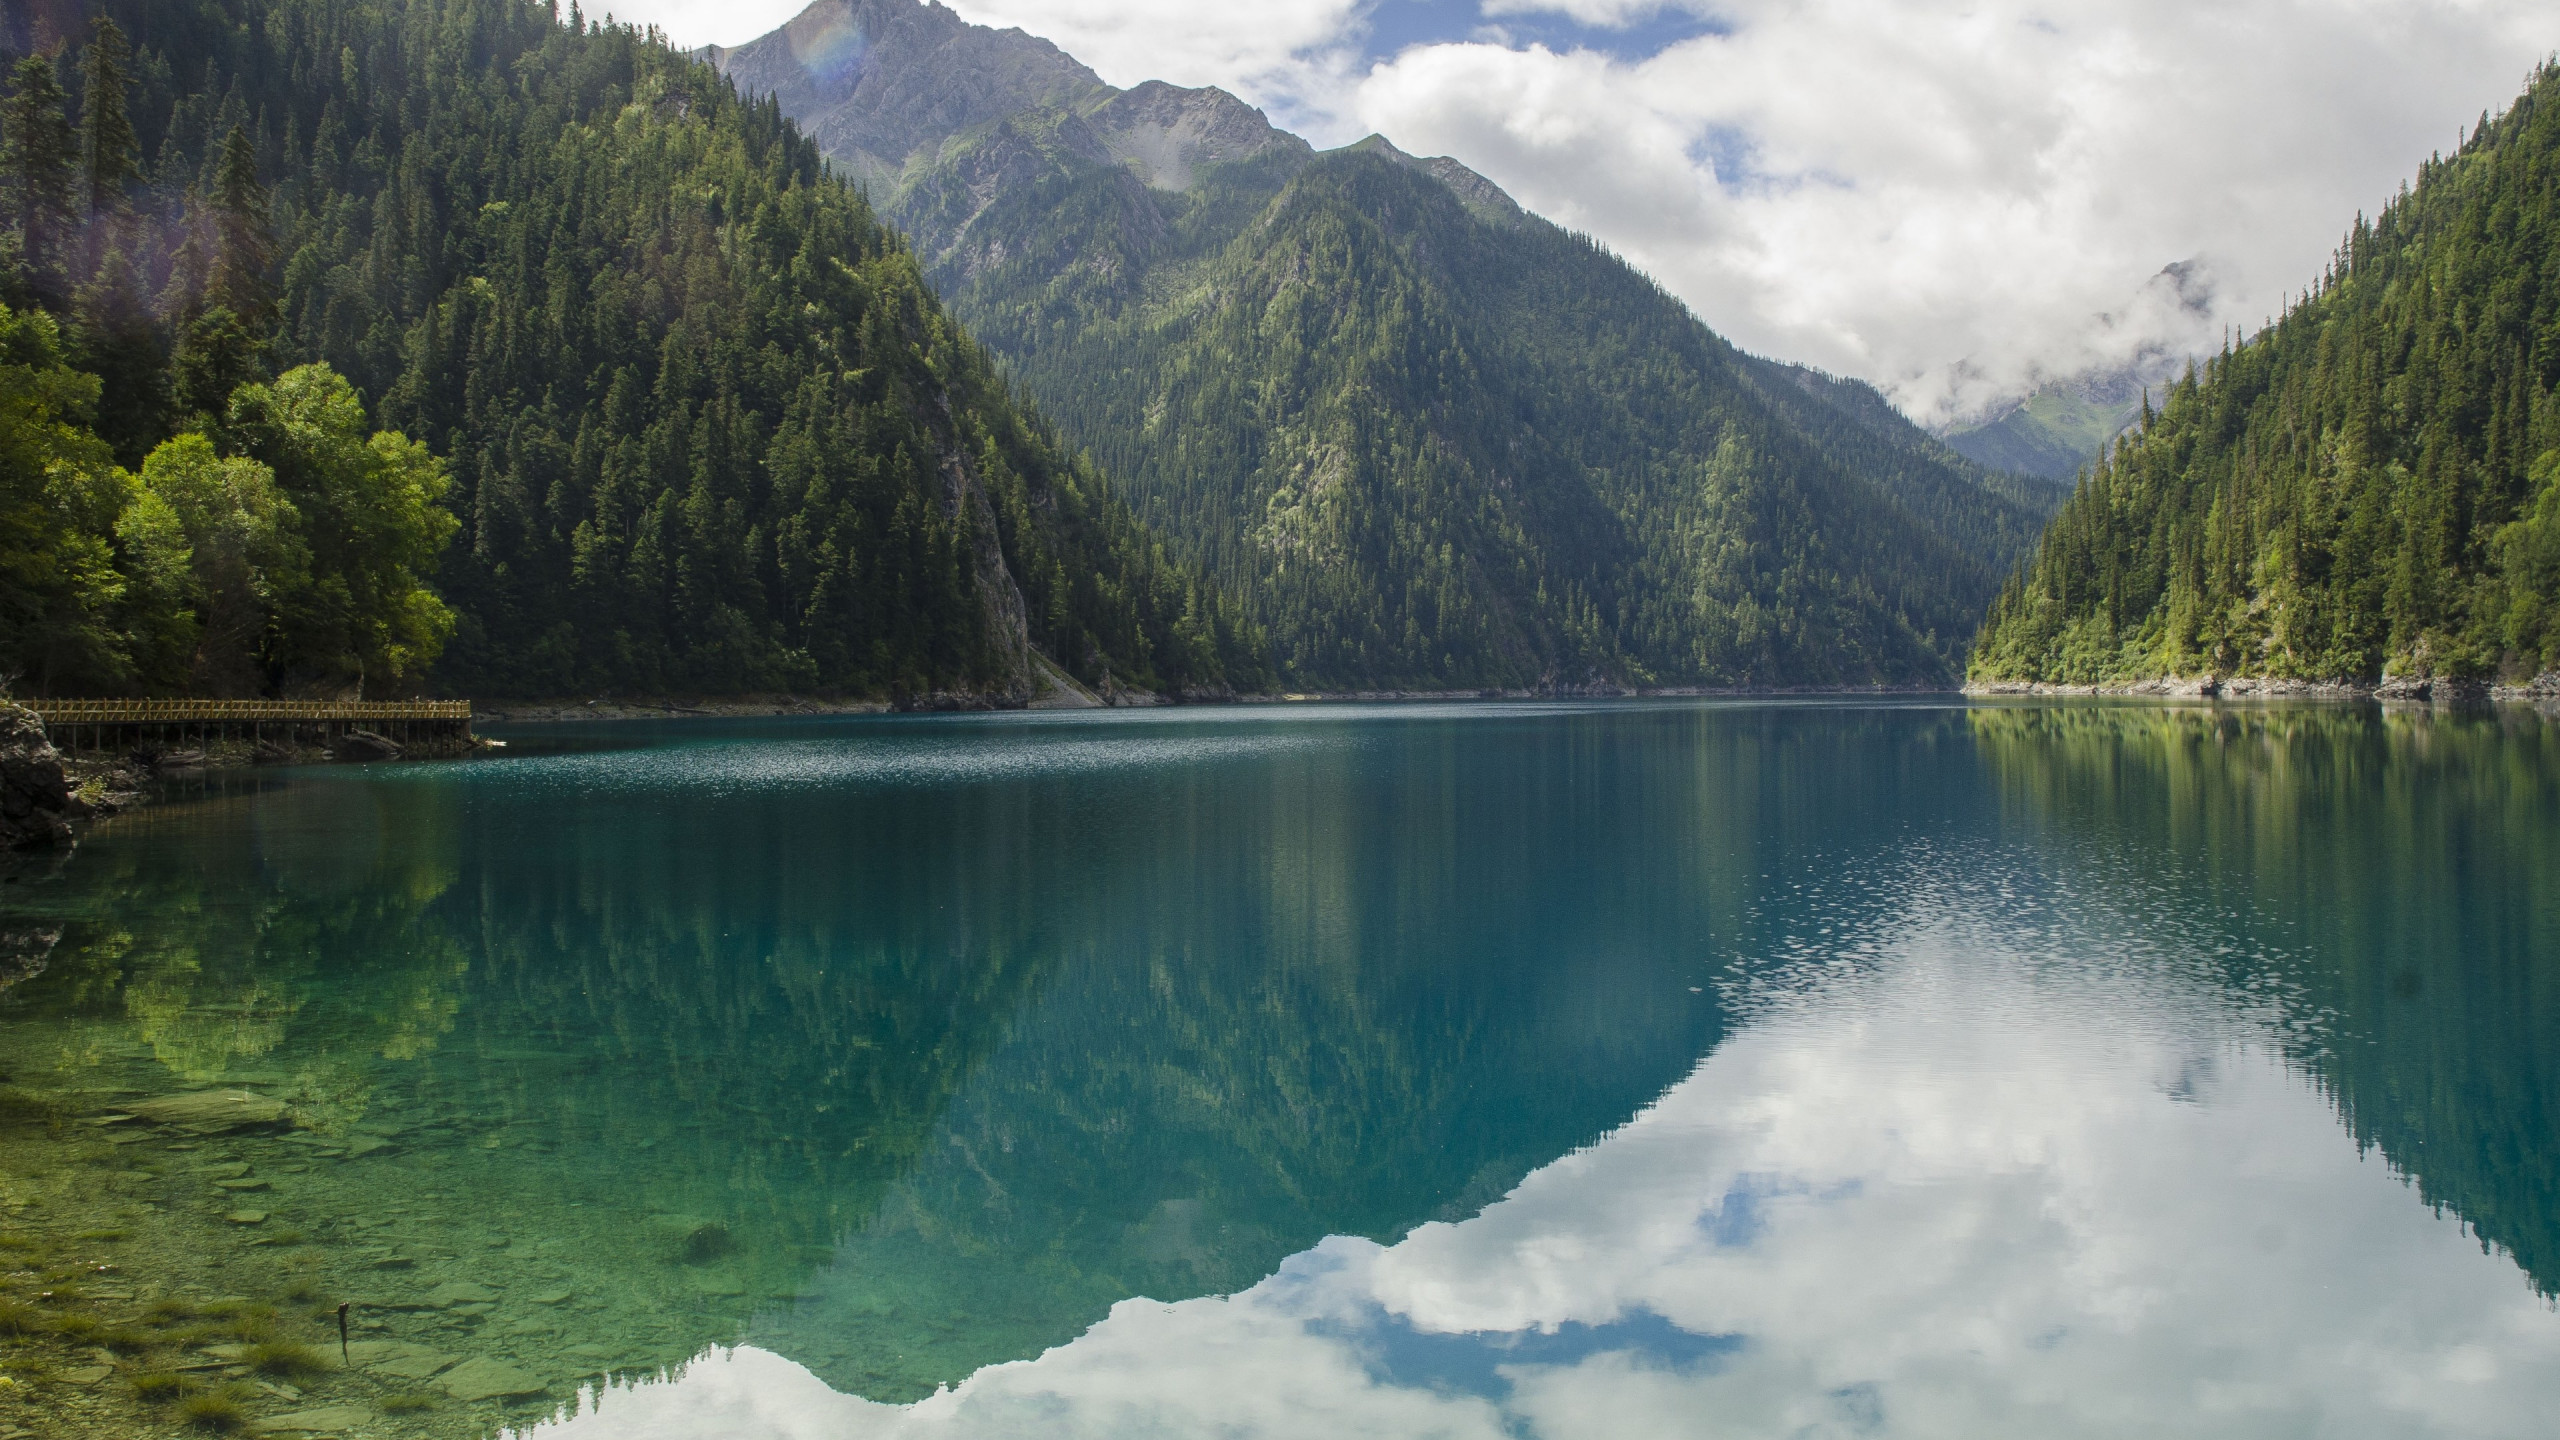 Landscape from Jiuzhaigou valley wallpaper 2560x1440